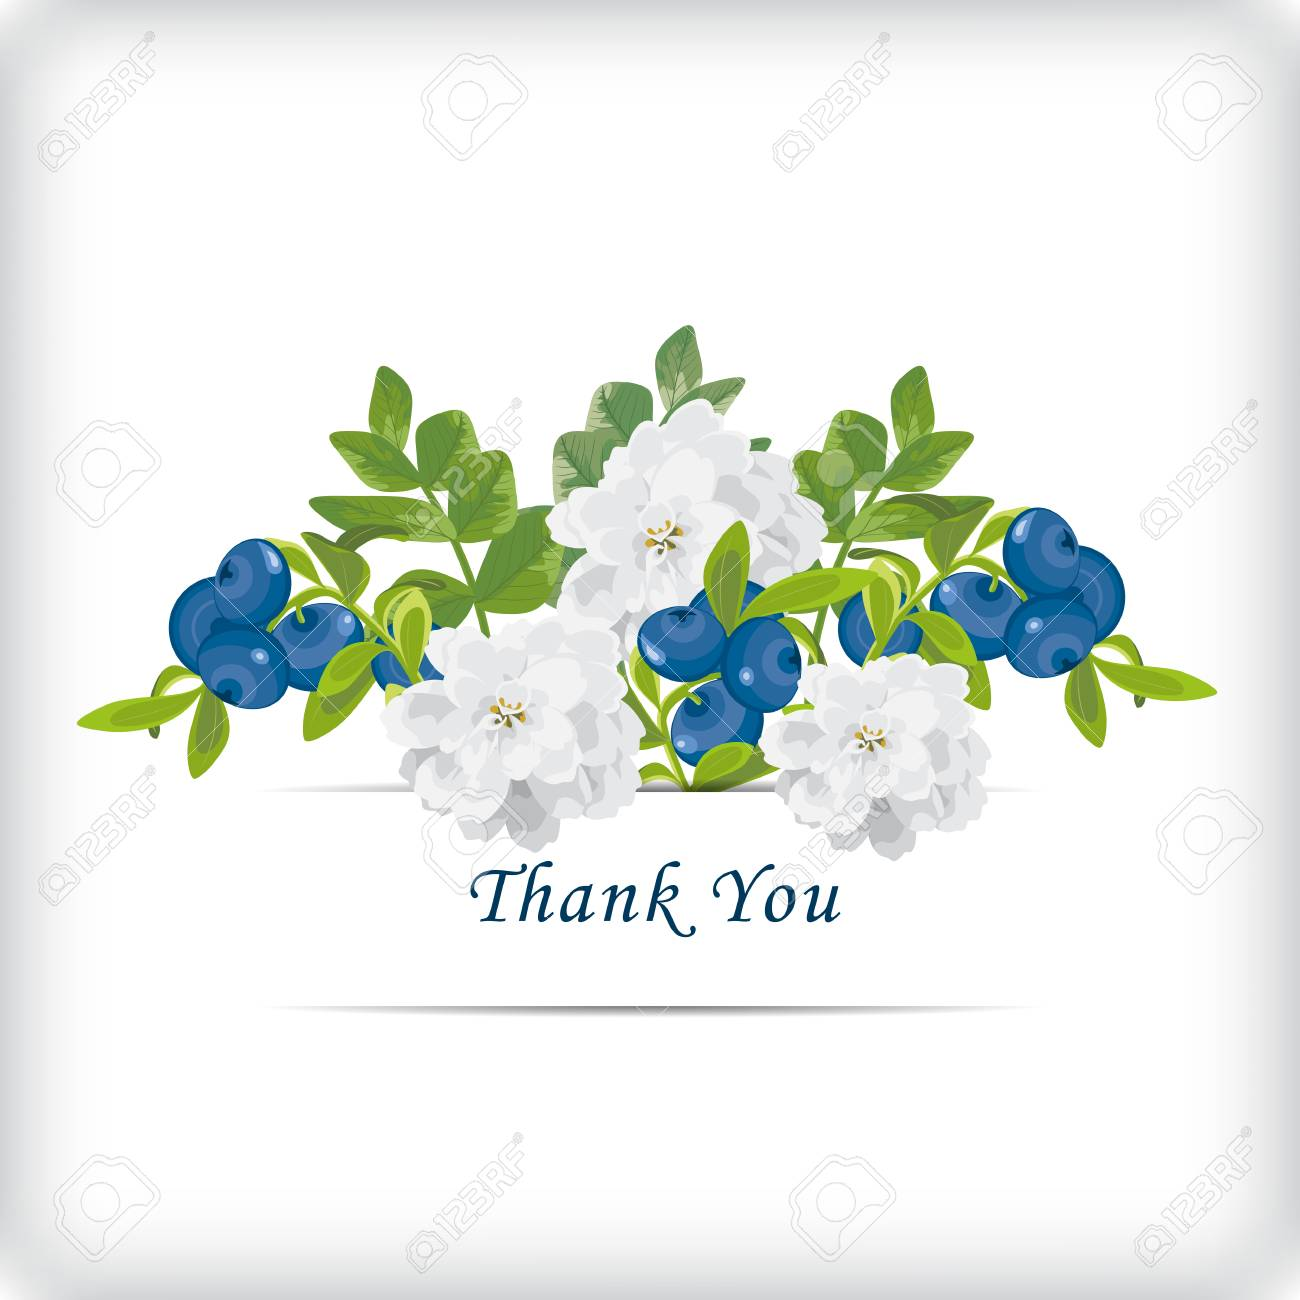 Floral Thank You Card With Beautiful Realistic White Flowers Royalty Free Cliparts Vectors And Stock Illustration Image 97701057